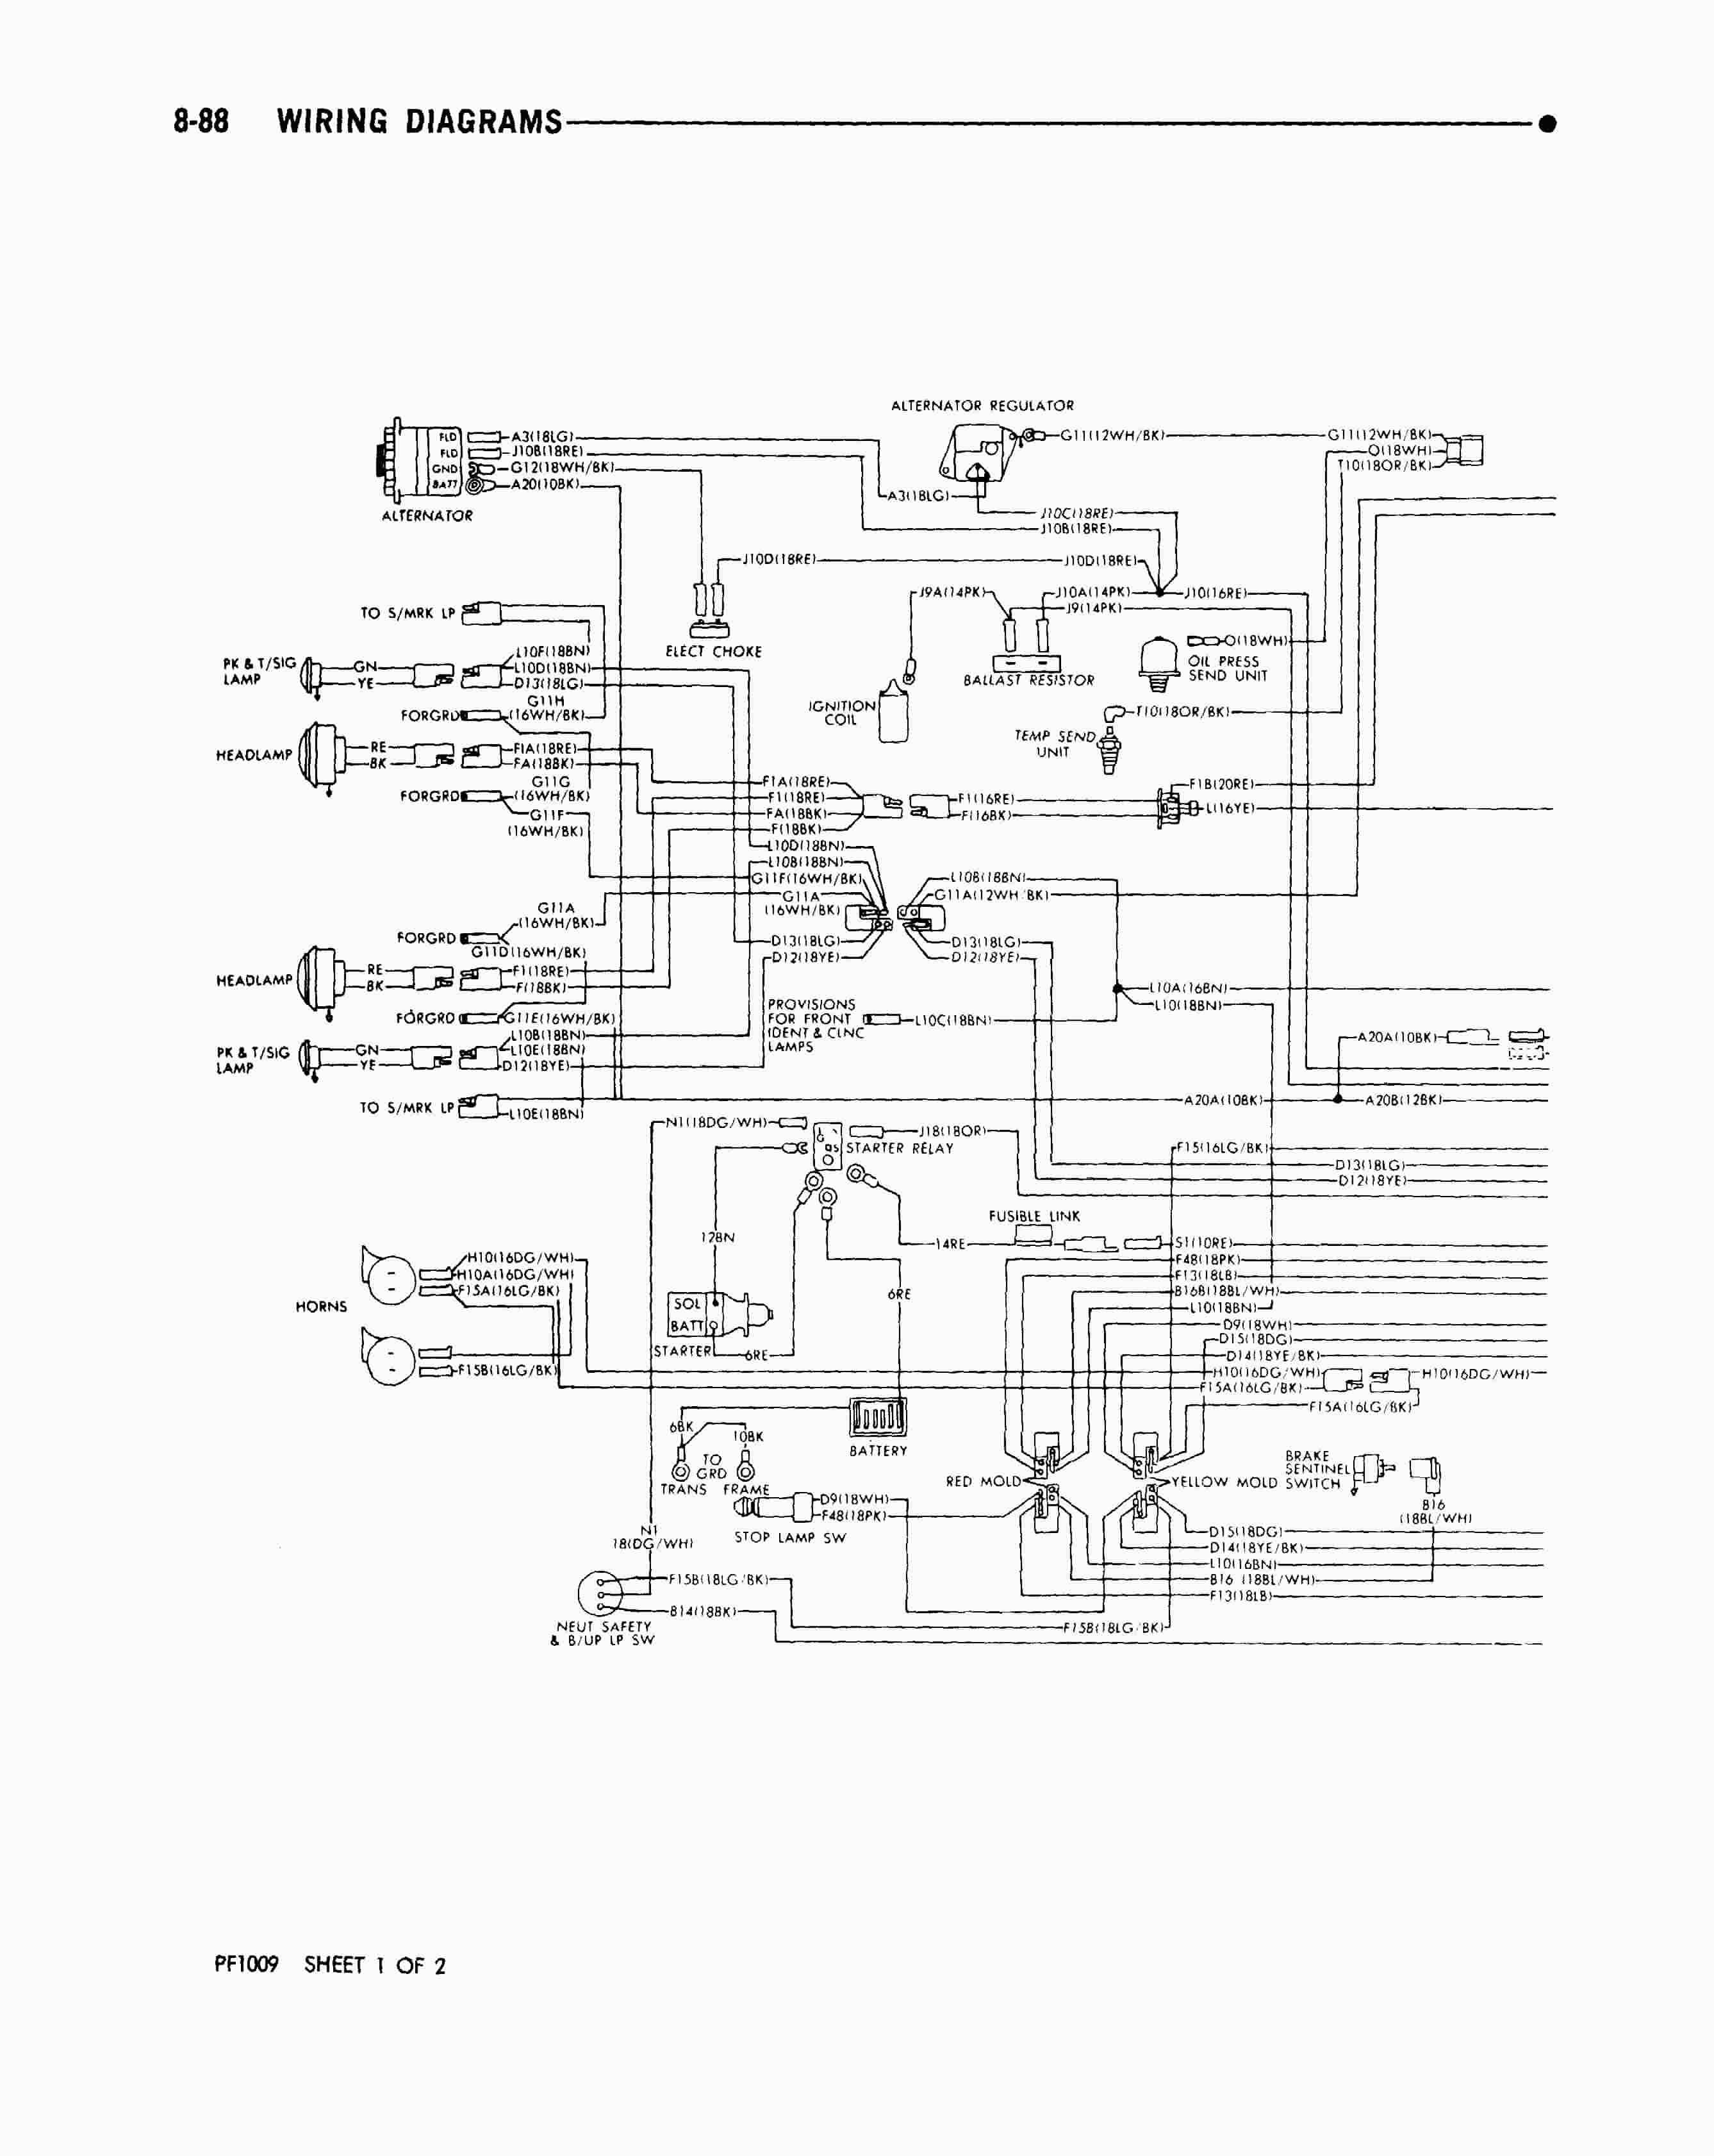 ford f53 chassis wiring schematic Collection-12v Wiring Diagram for Campervan Valid 2000 ford F53 Motorhome Chassis Wiring Diagram 16-s